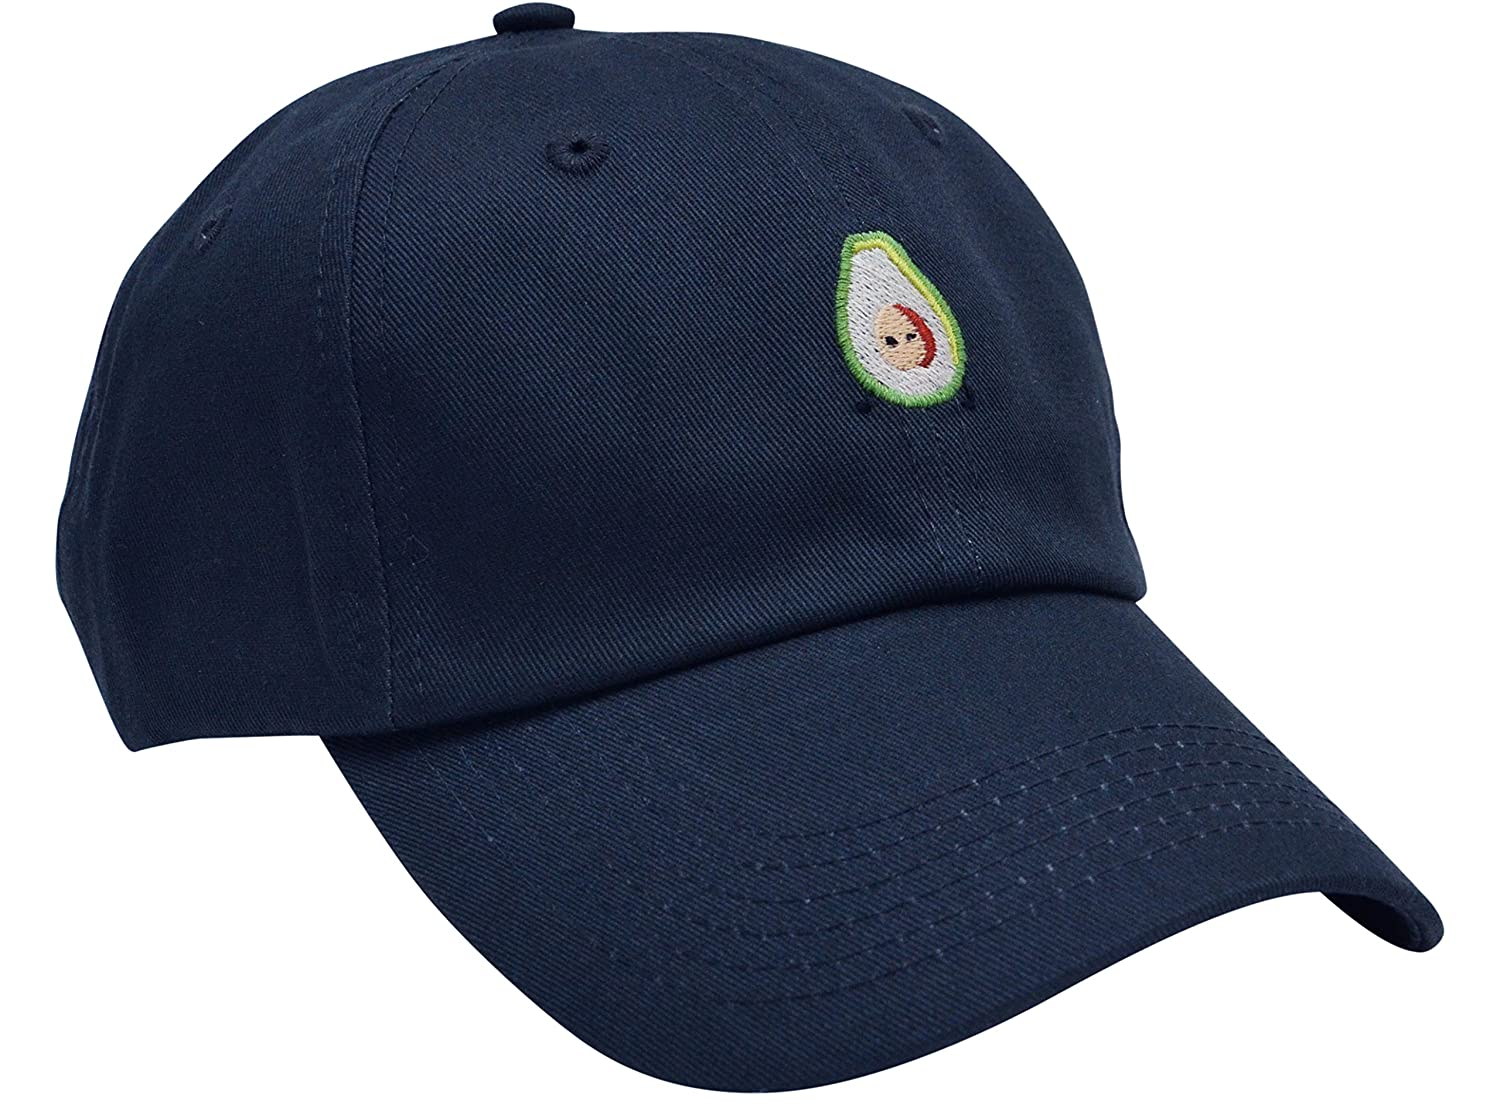 Avocado Designer Embroidery. Lightweight and Durable – Perfect Holiday  Gift! 6 Panel Crown. Low Profile and Unstructured. Hand Wash   Spot Clean  Adjustable ... 38db39947f93